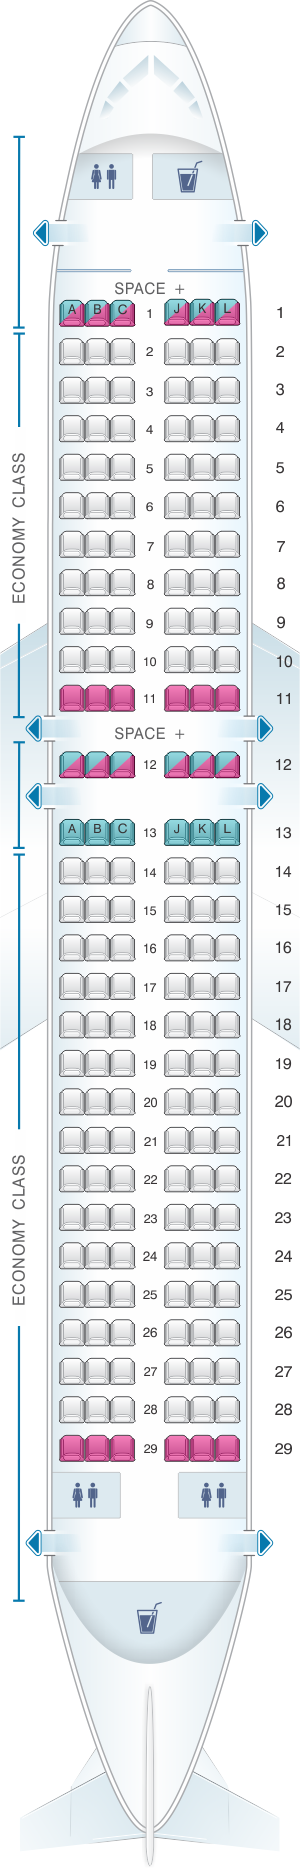 Seat map for LATAM Airlines Airbus A320 200 V1